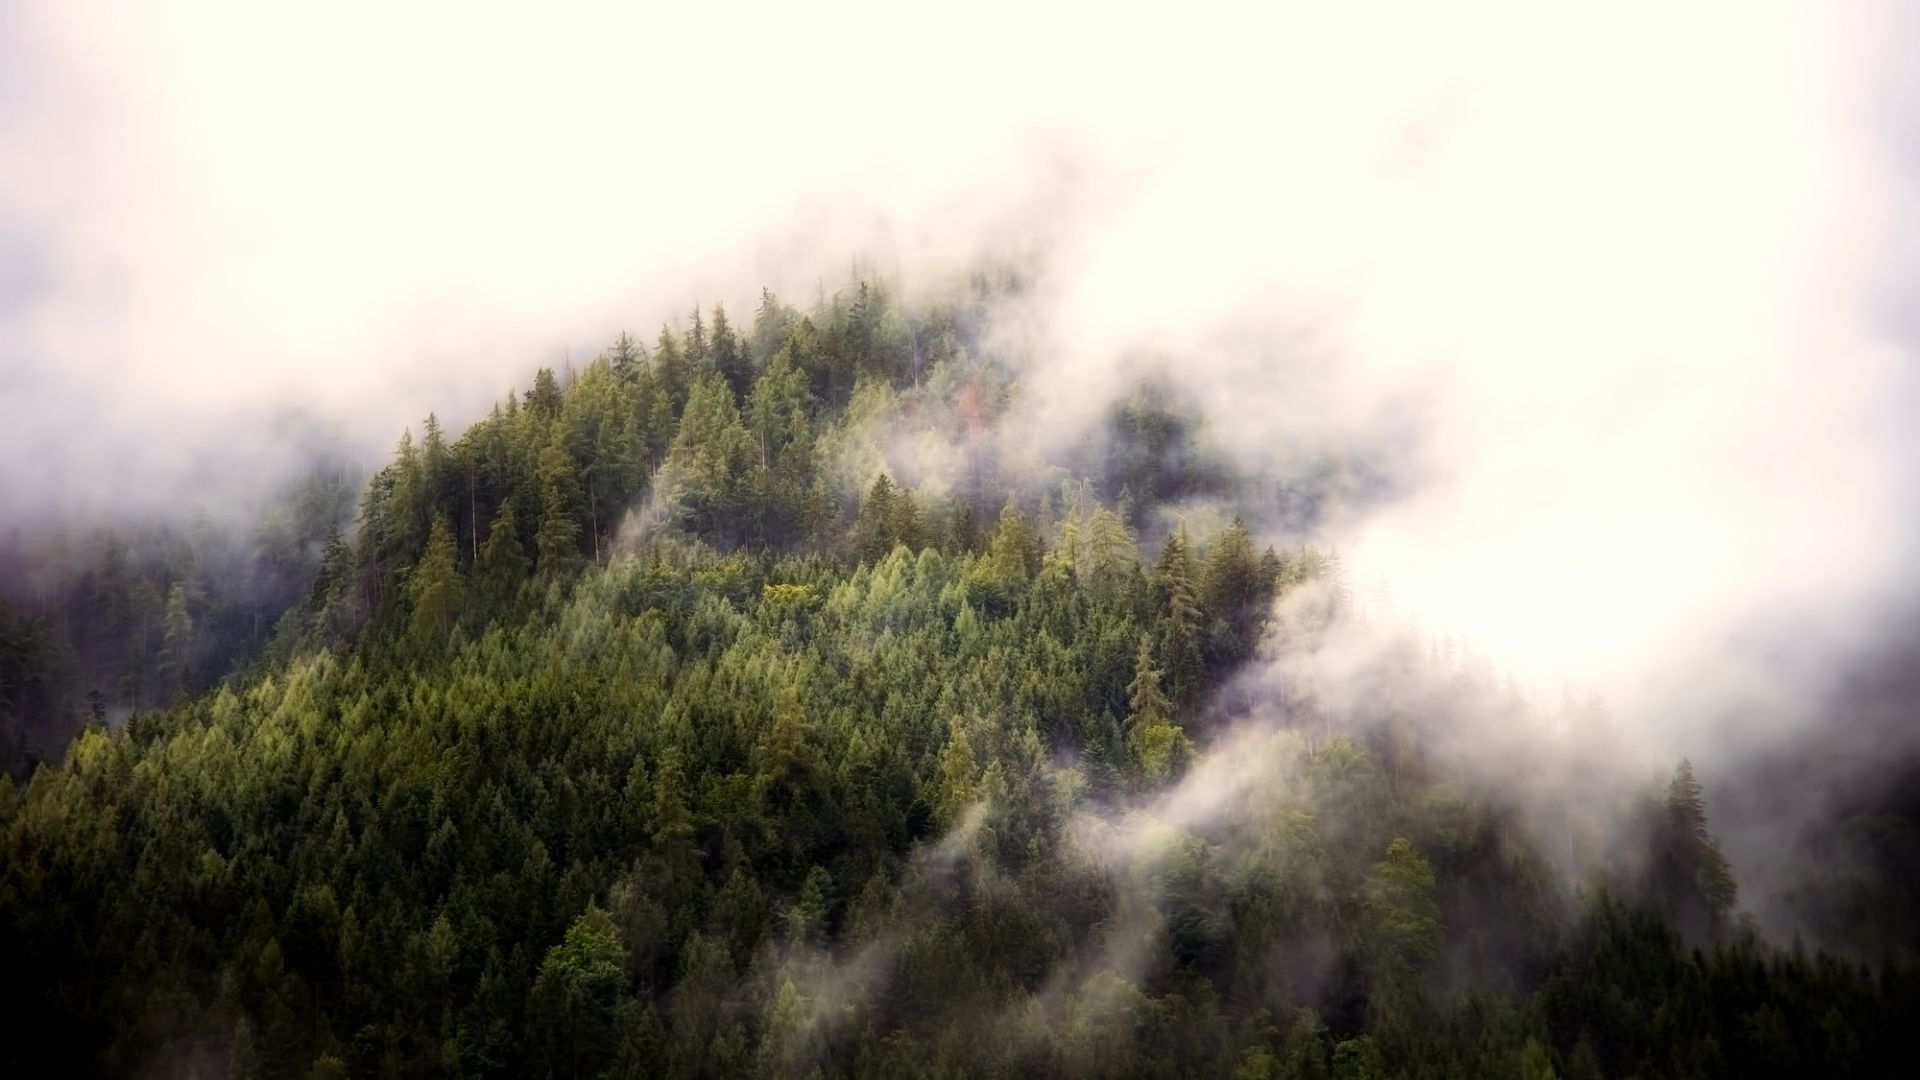 Wallpaper Fog, aerial view, forest, nature, trees